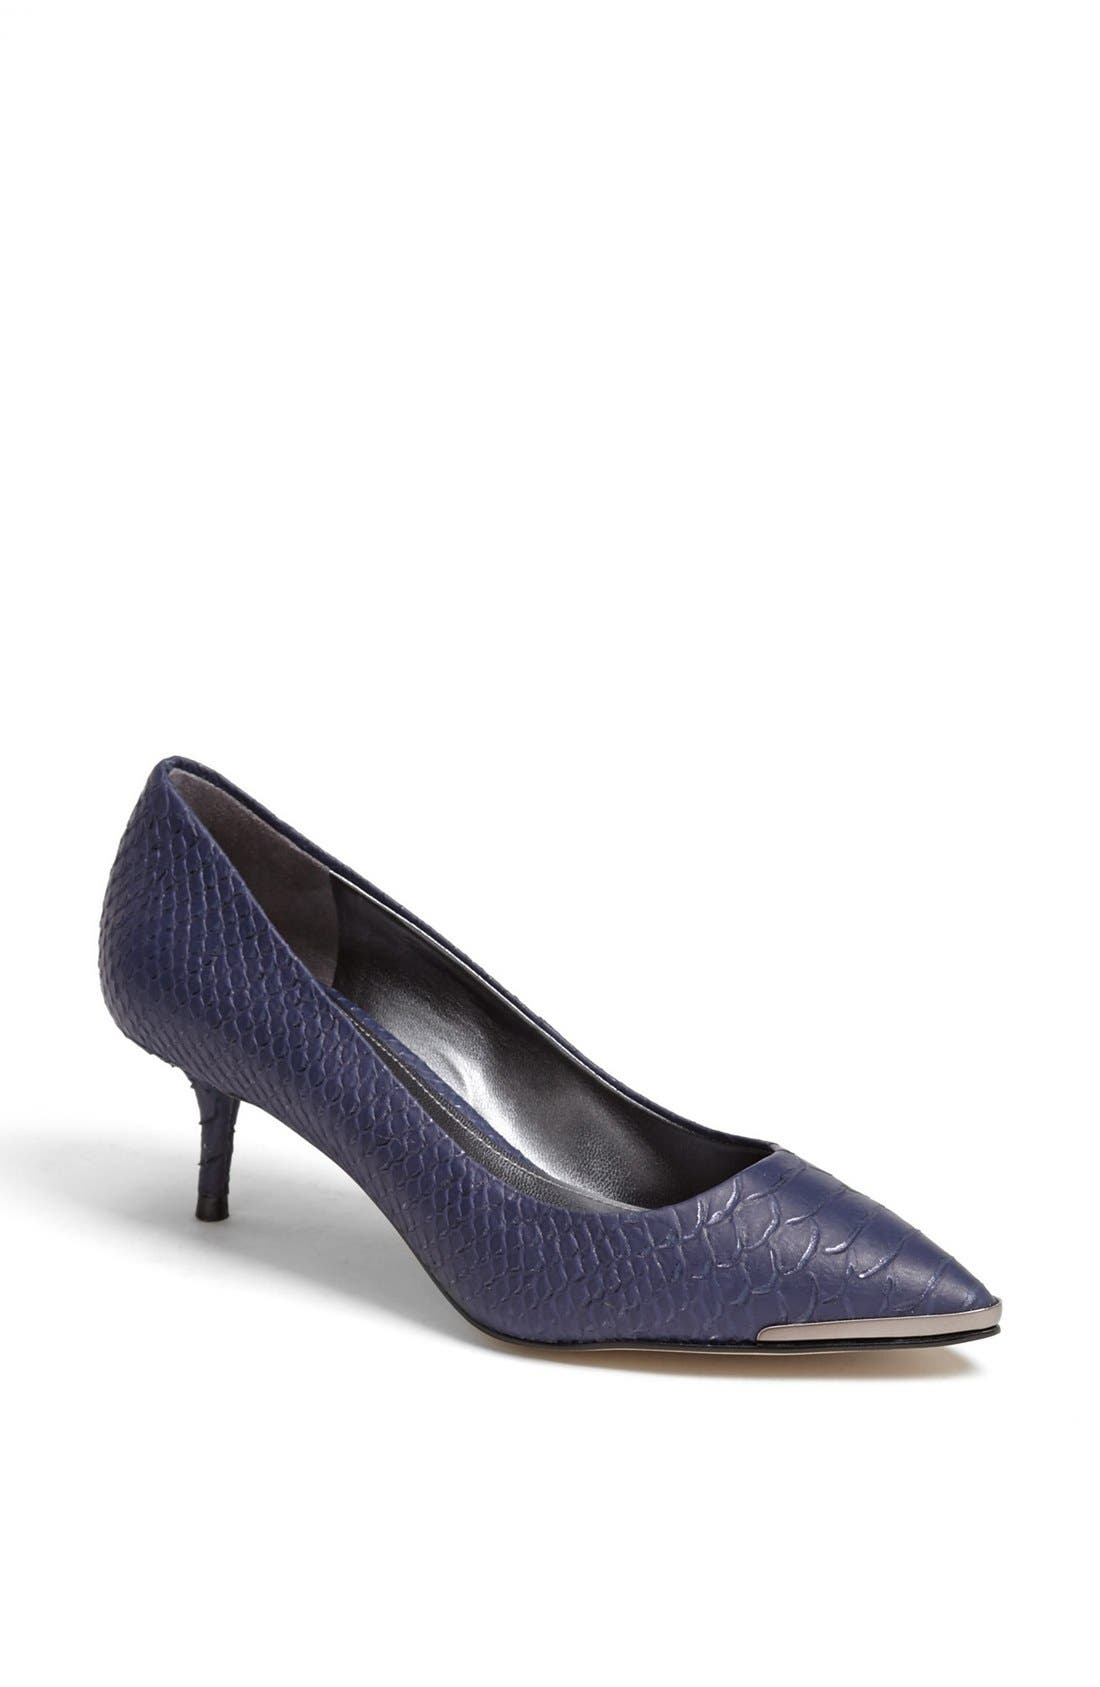 Main Image - Enzo Angiolini 'Graysn' Embossed Leather Pump